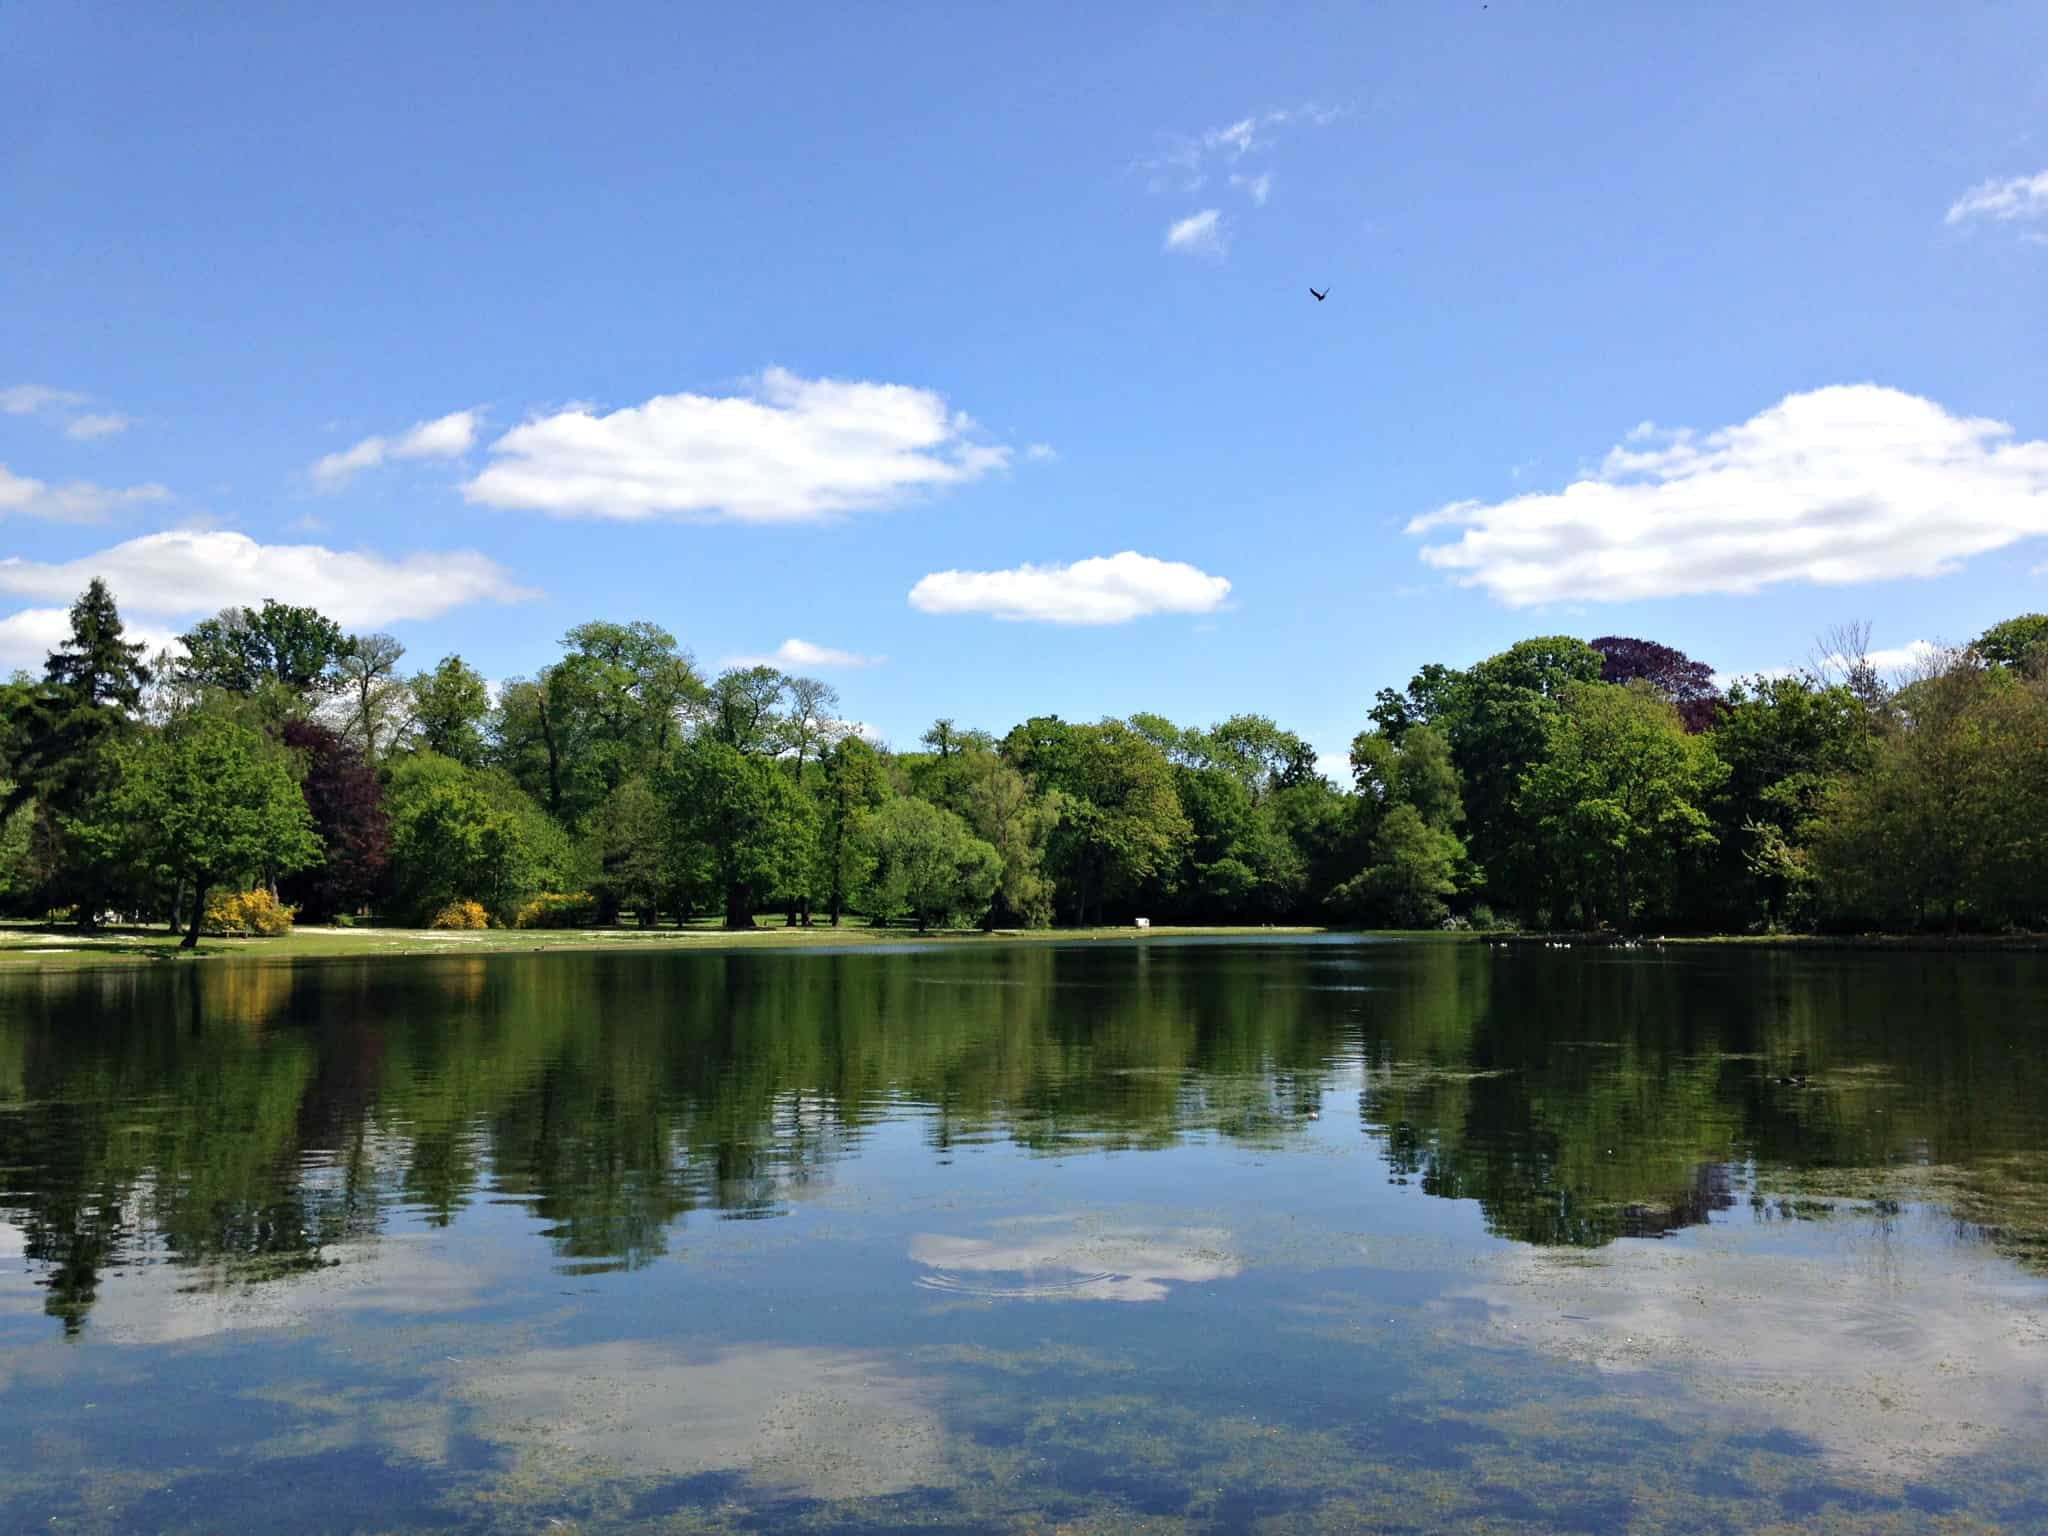 Claremont Landscape Gardens in Surrey | My Travel Monkey